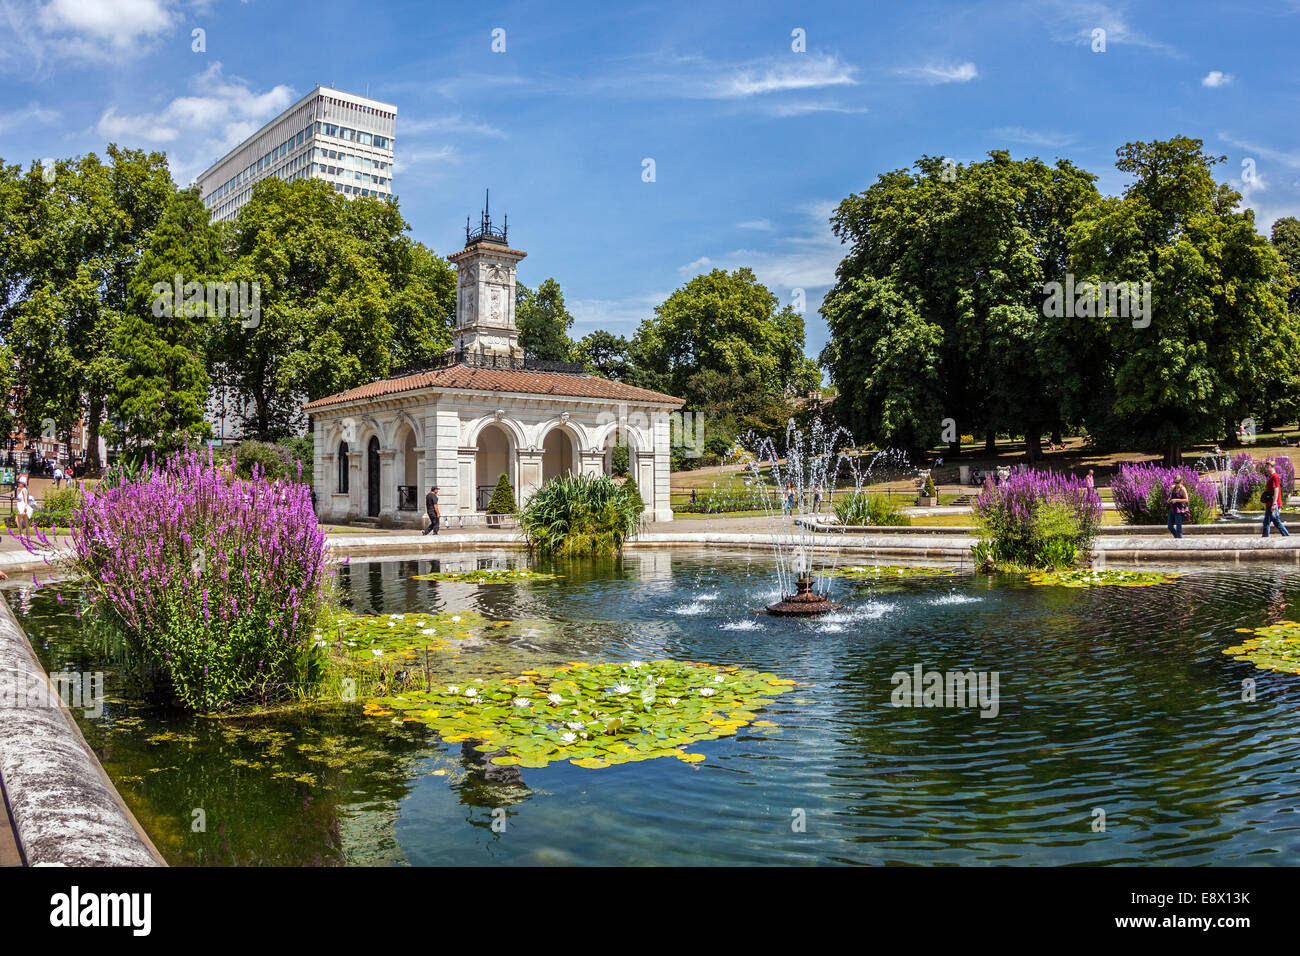 the italian gardens kensington gardens london E8X13K